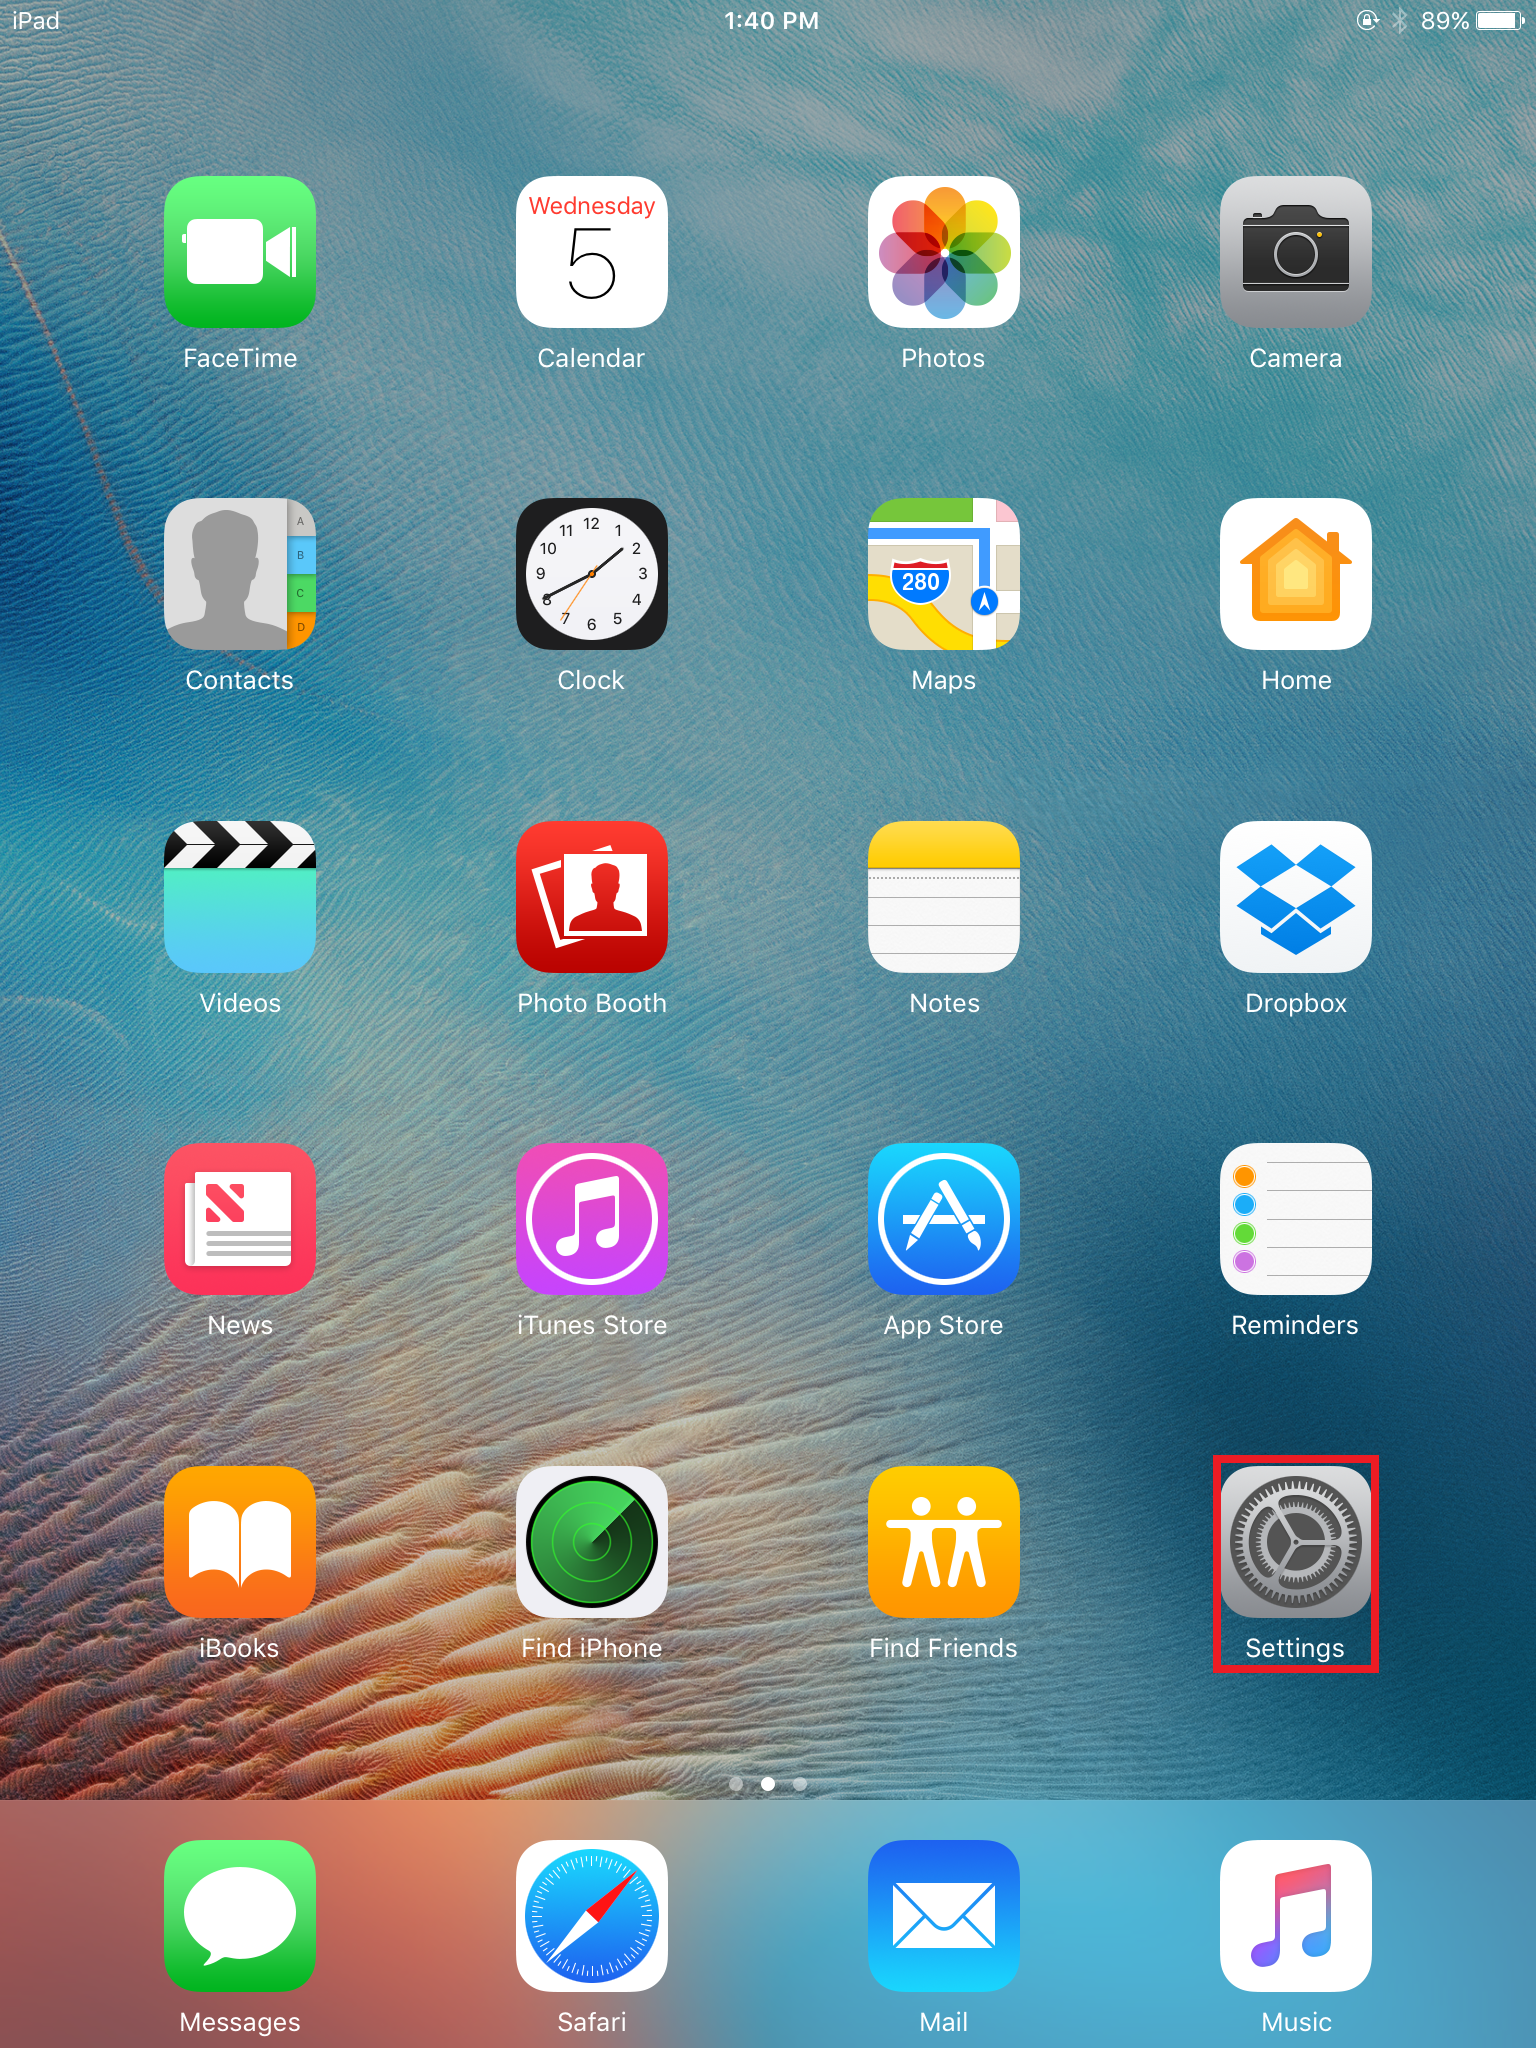 settings icon on the iPad 4 homescreen.